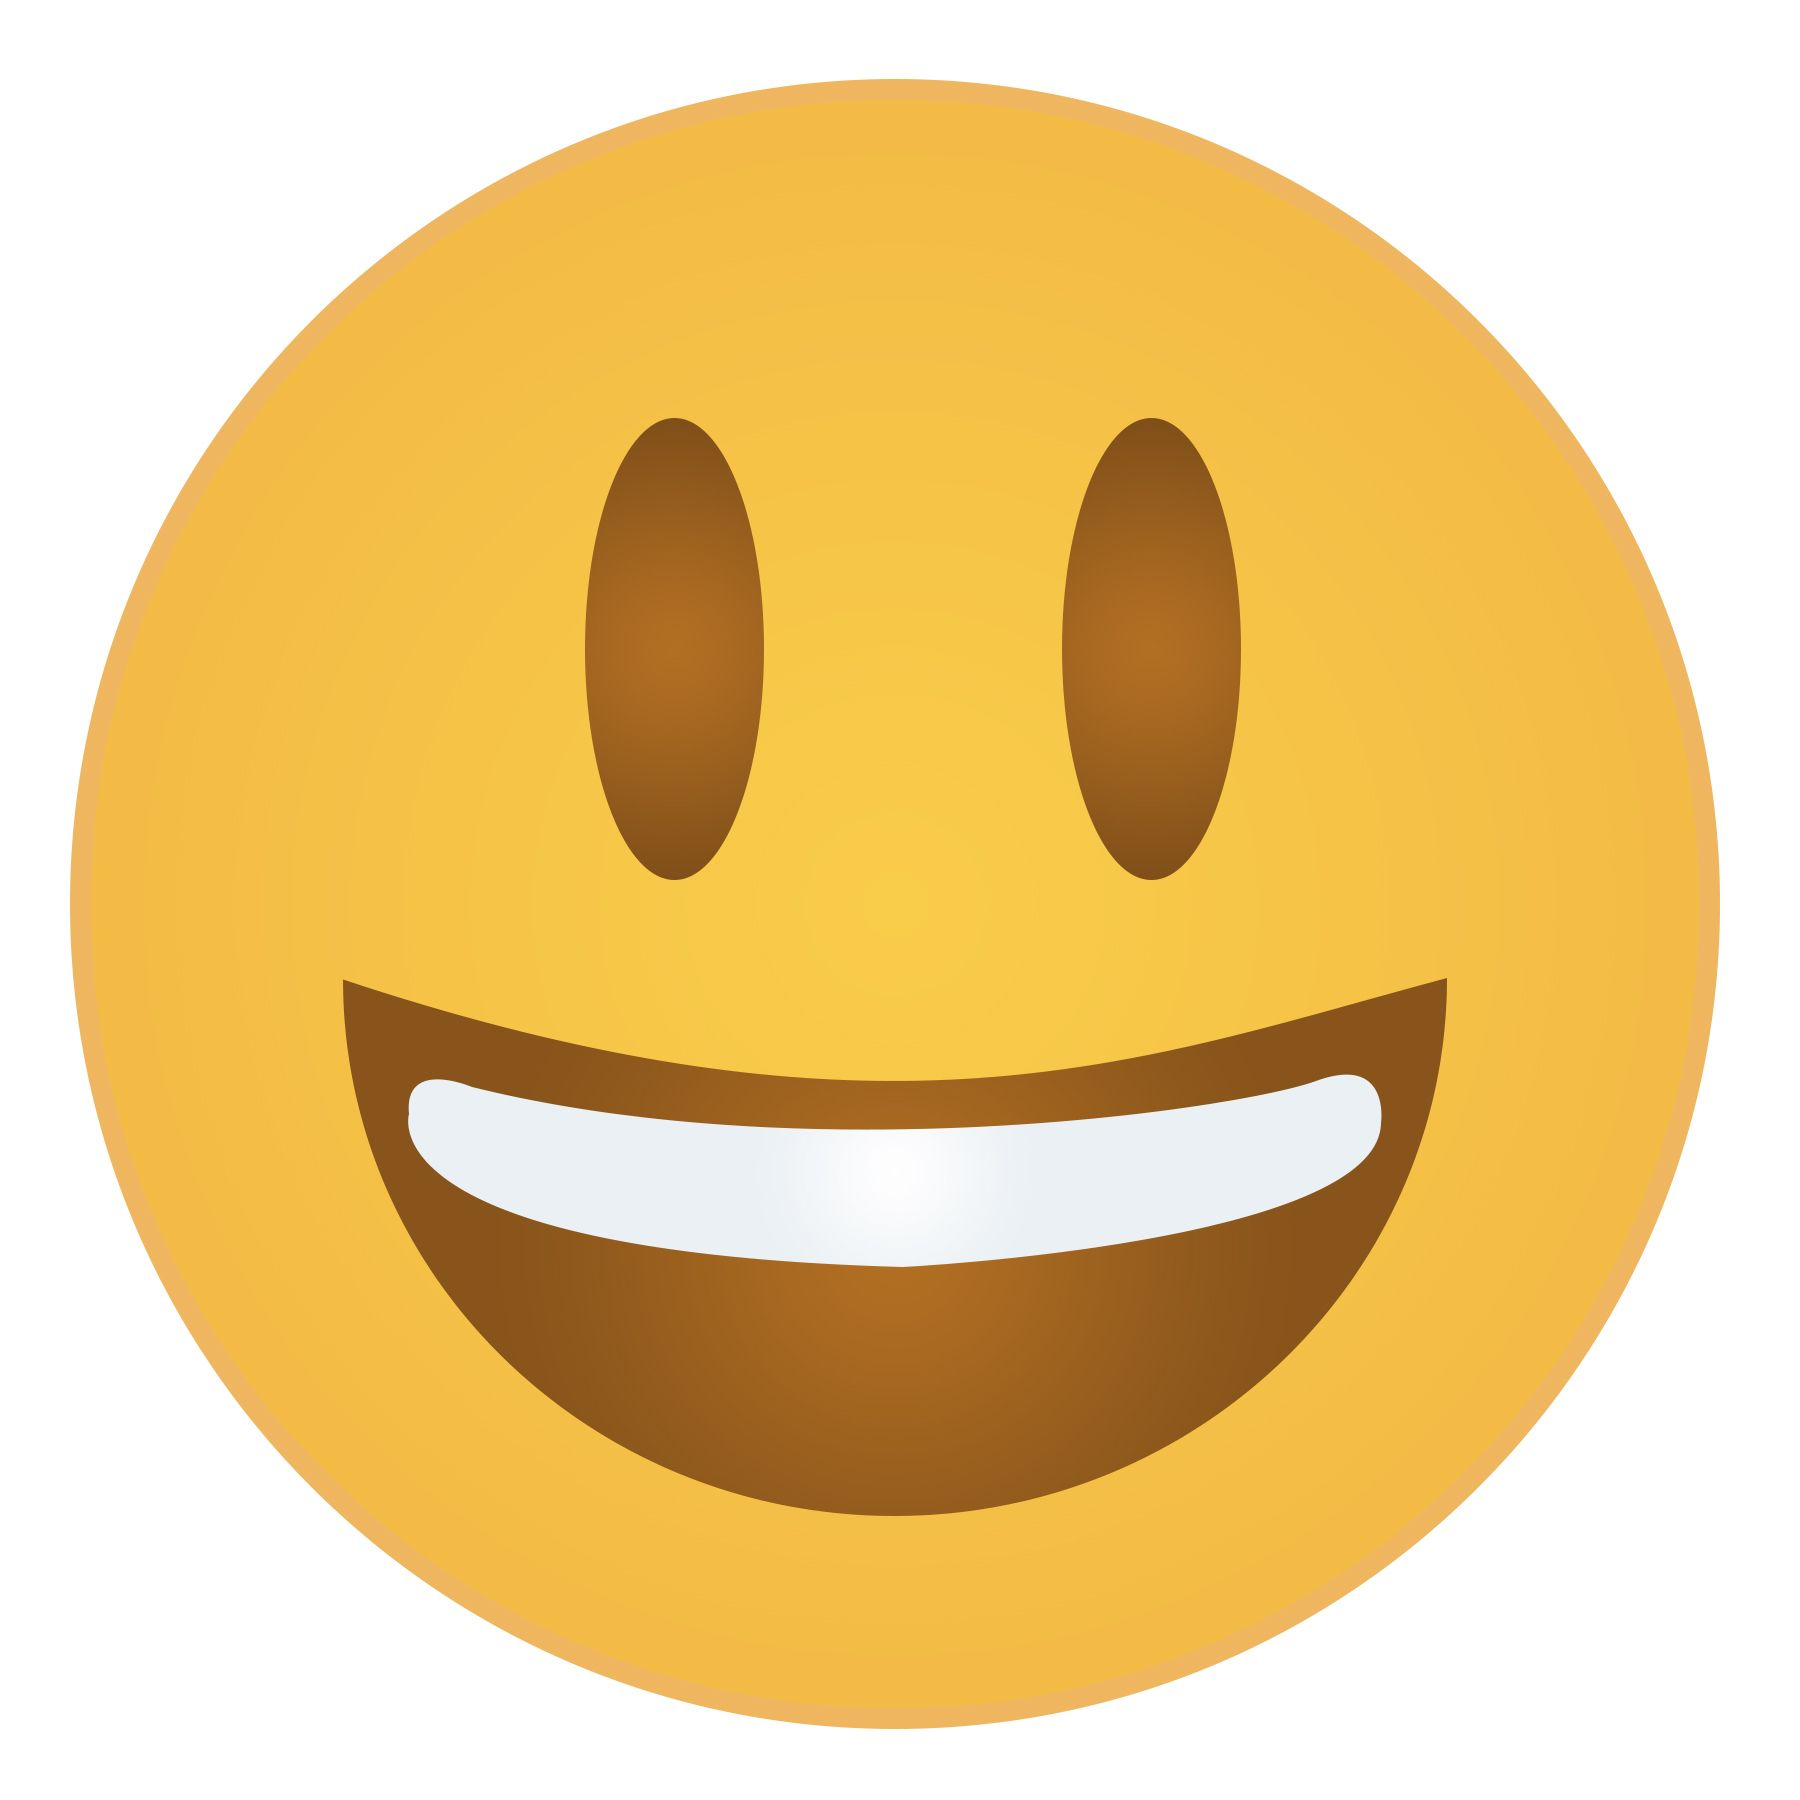 Free Printable Emoji Faces - Printable  | Emoji In 2019 - Free Printable Emoji Faces